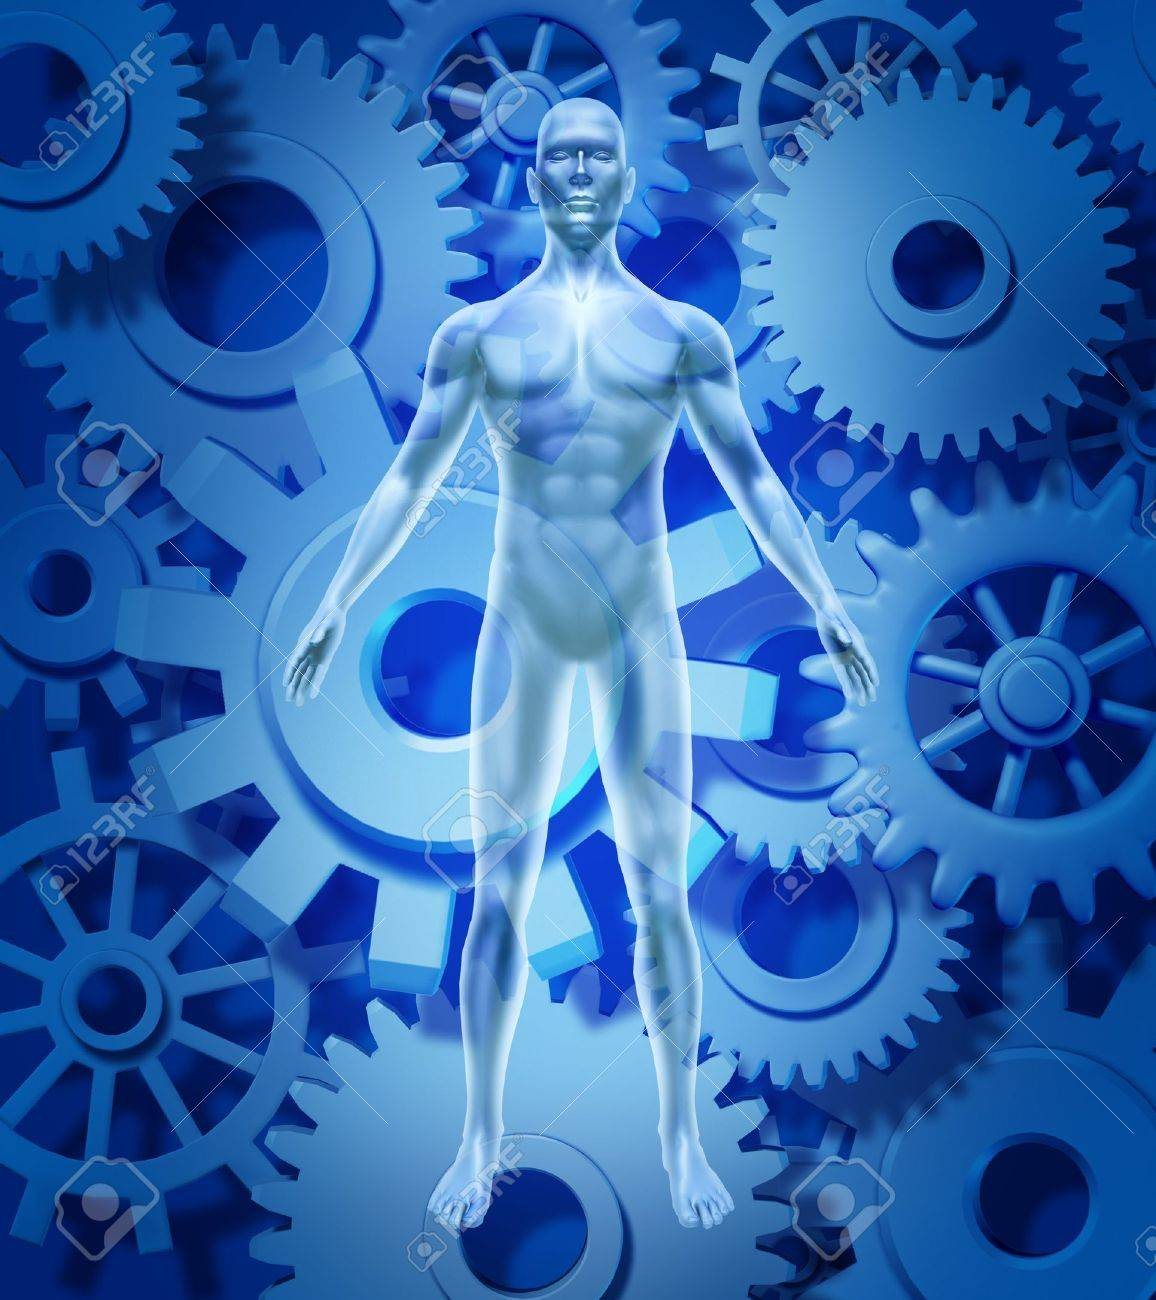 Human health and biology symbol showing a figure with gears and cogs representing the medical healthcare concept of healthy organ function of the body and mind free of disease and illness due to pharmaceutical medicine cures. Stock Photo - 11221487